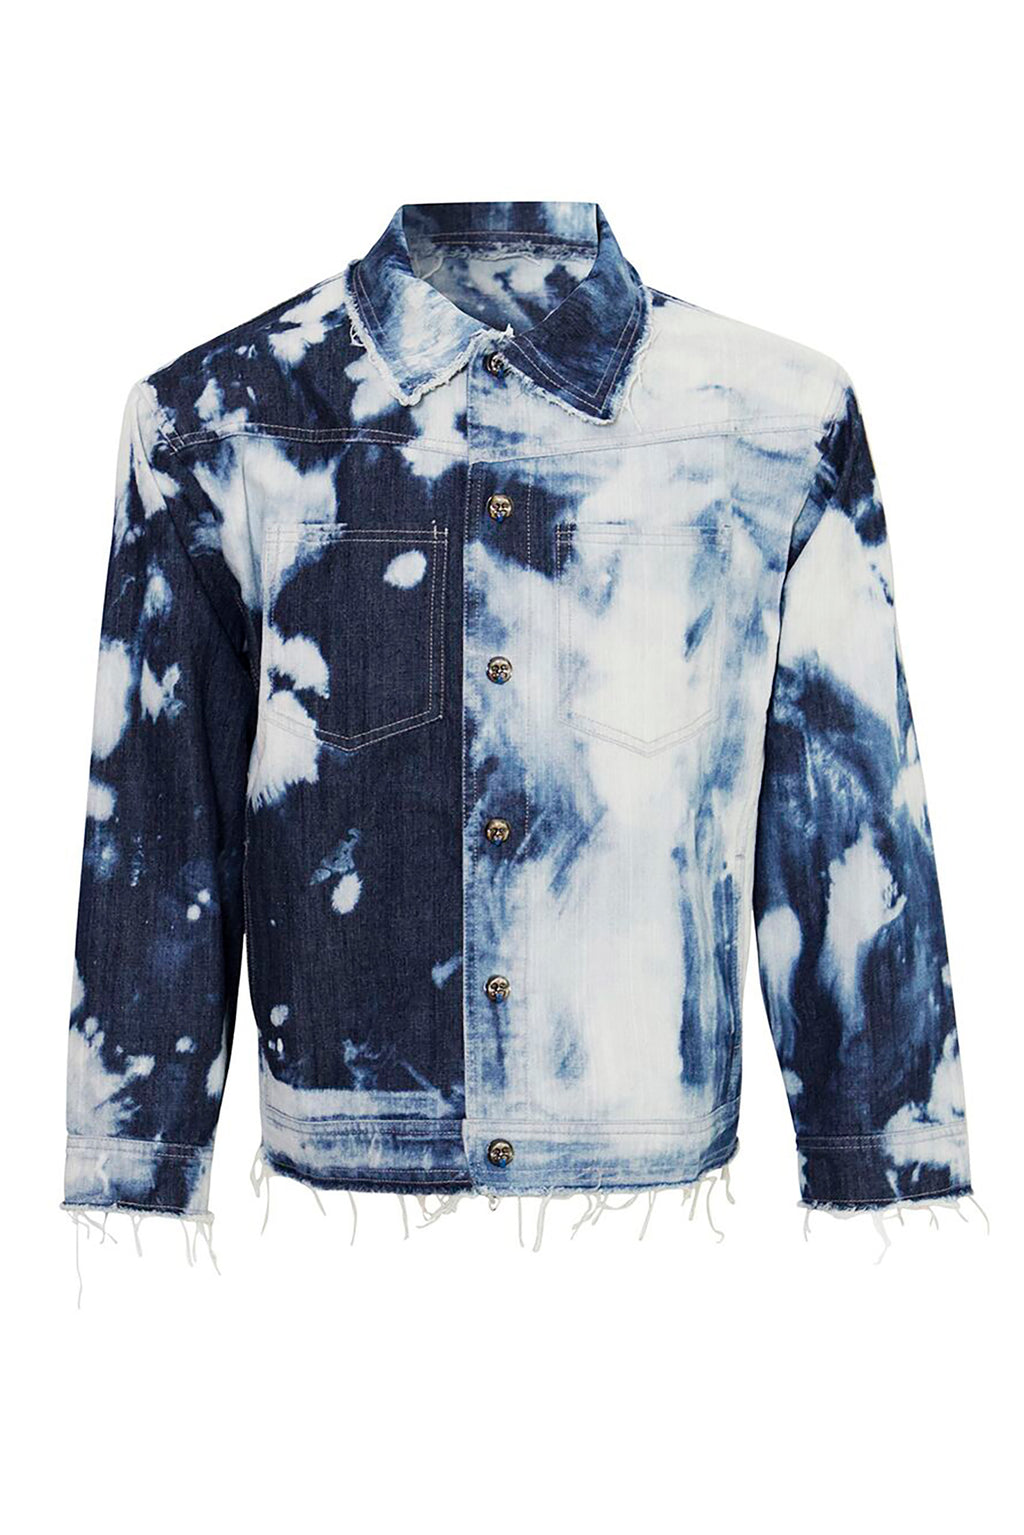 Unisex Tie Dye Denim Jacket